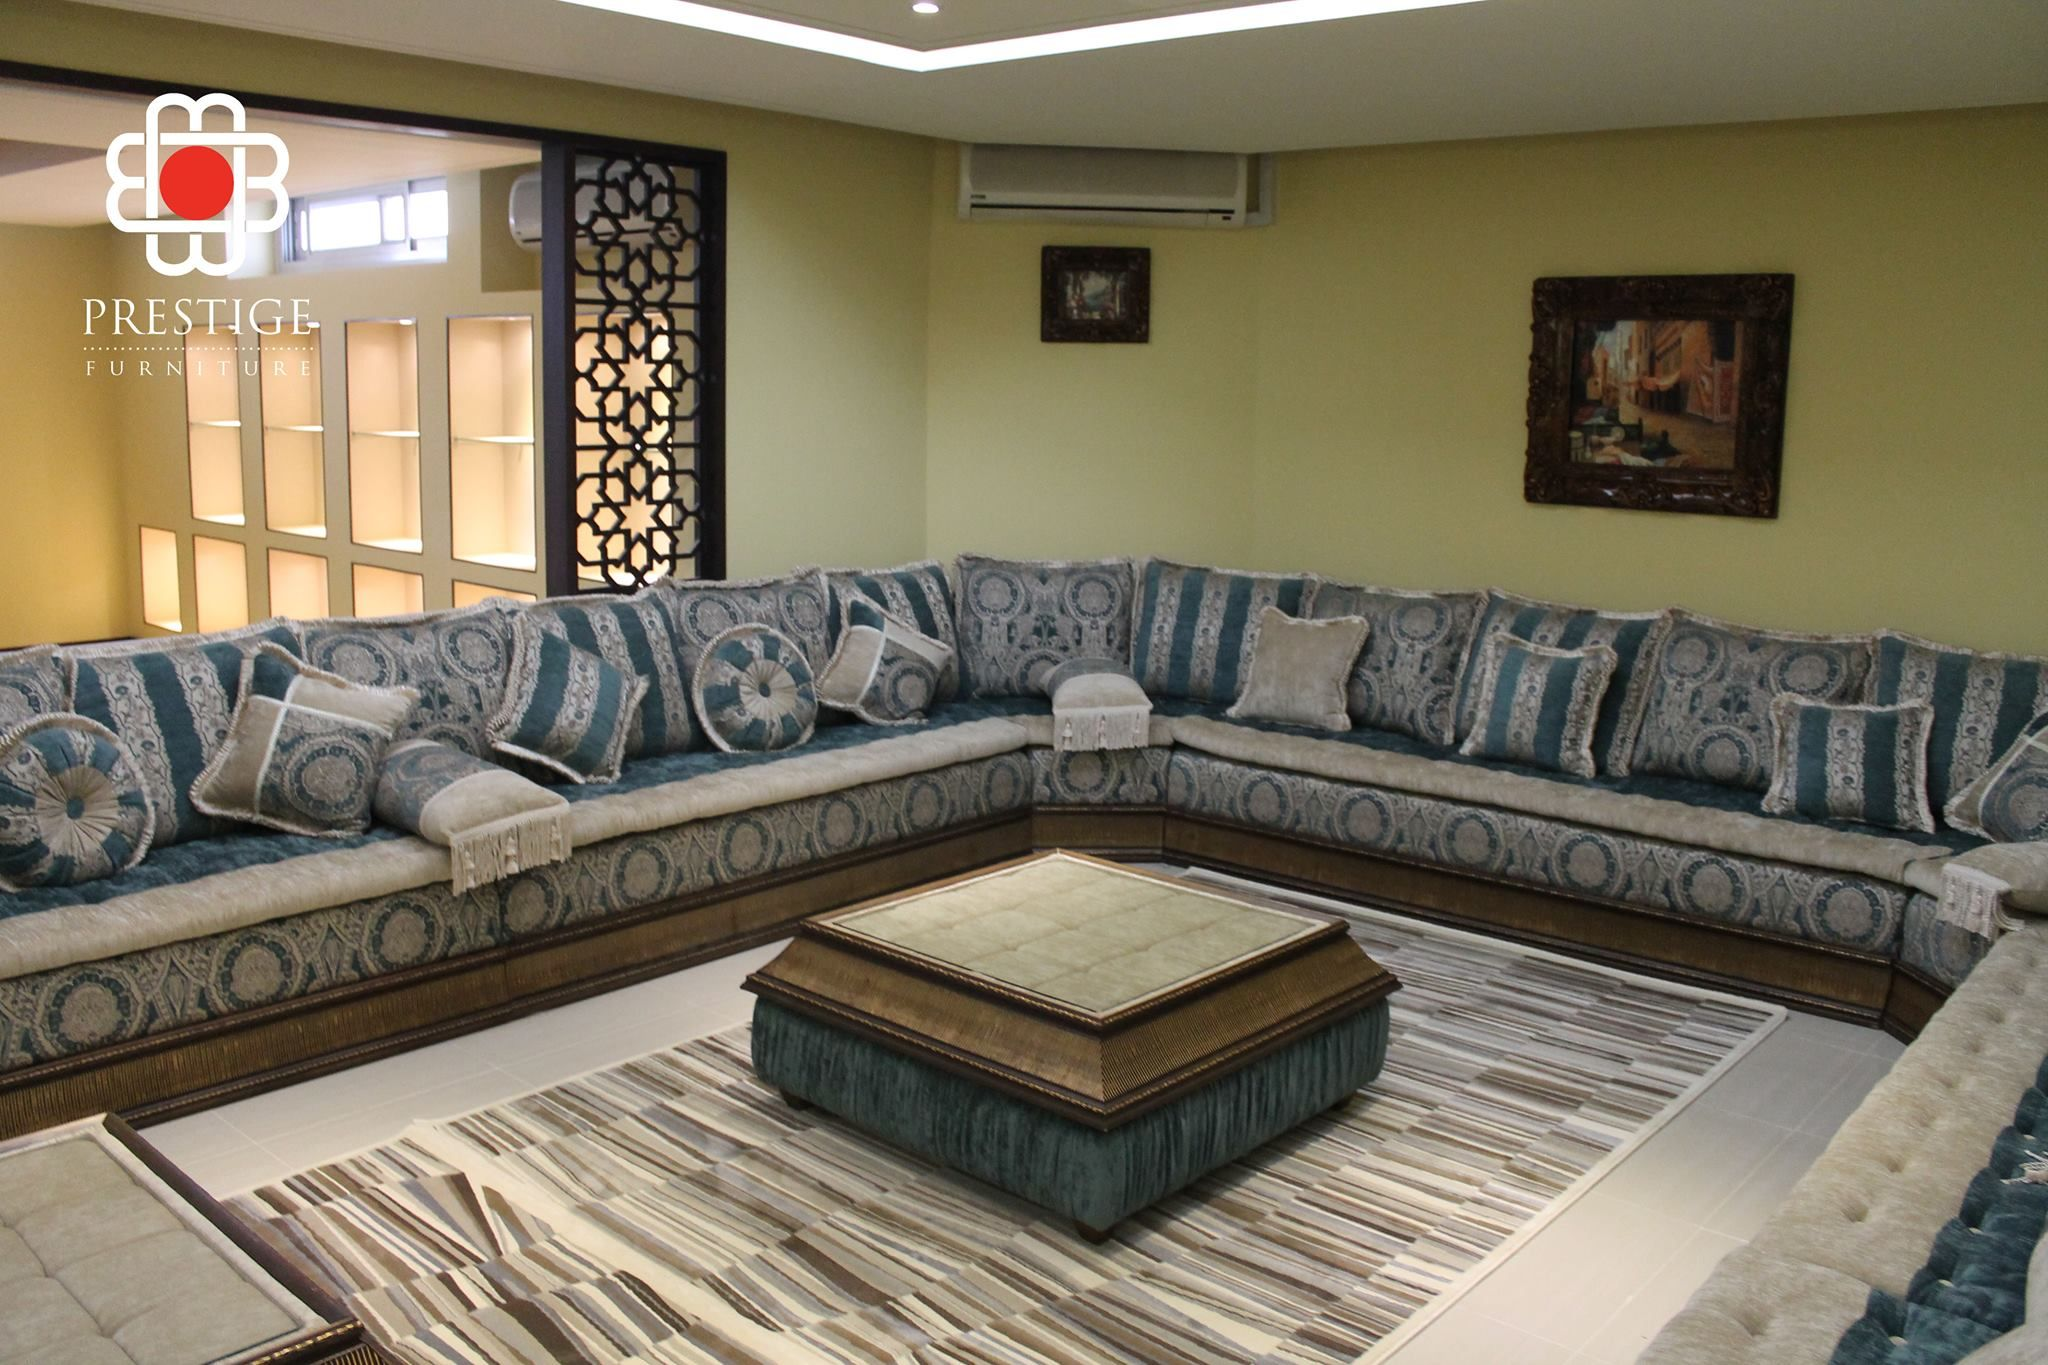 Simple Yet Chic Livingroom Interior By Prestige Furnitures The Silver Arabian Esque Patterned Design Furnitur Furniture Furniture Design Living Room Furniture